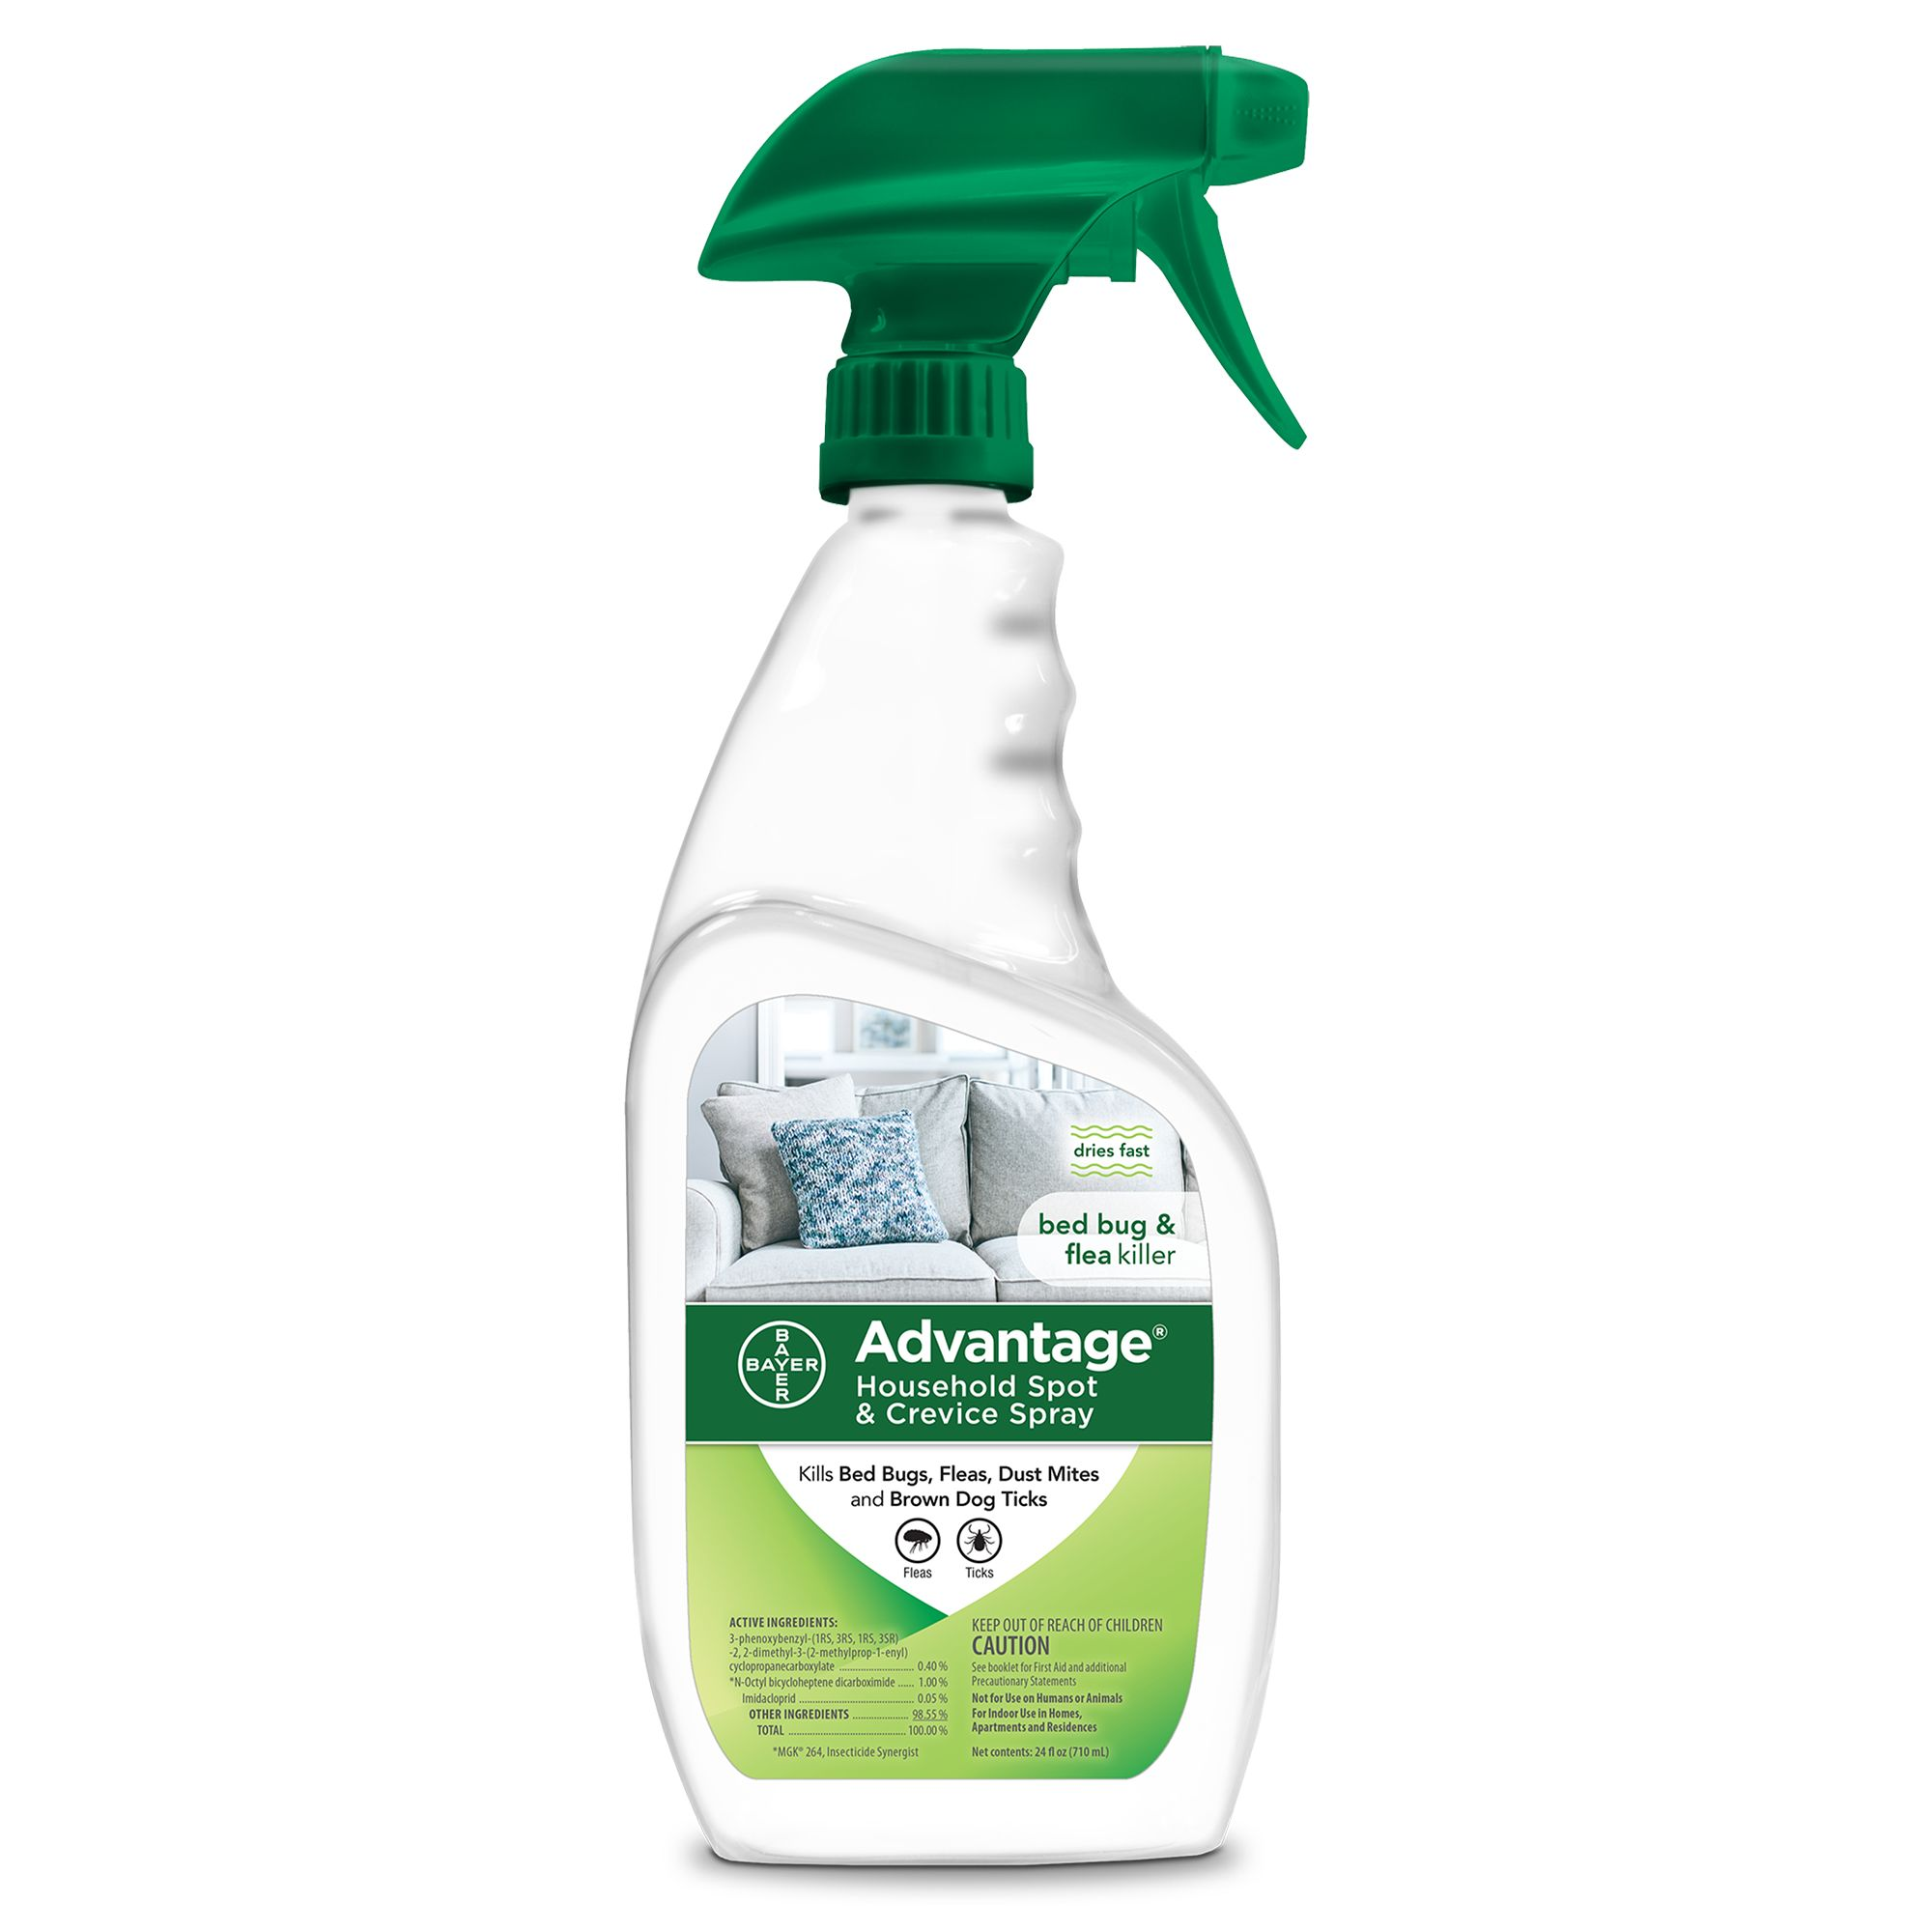 Advantage Flea And Tick Household Spot And Crevice Spray